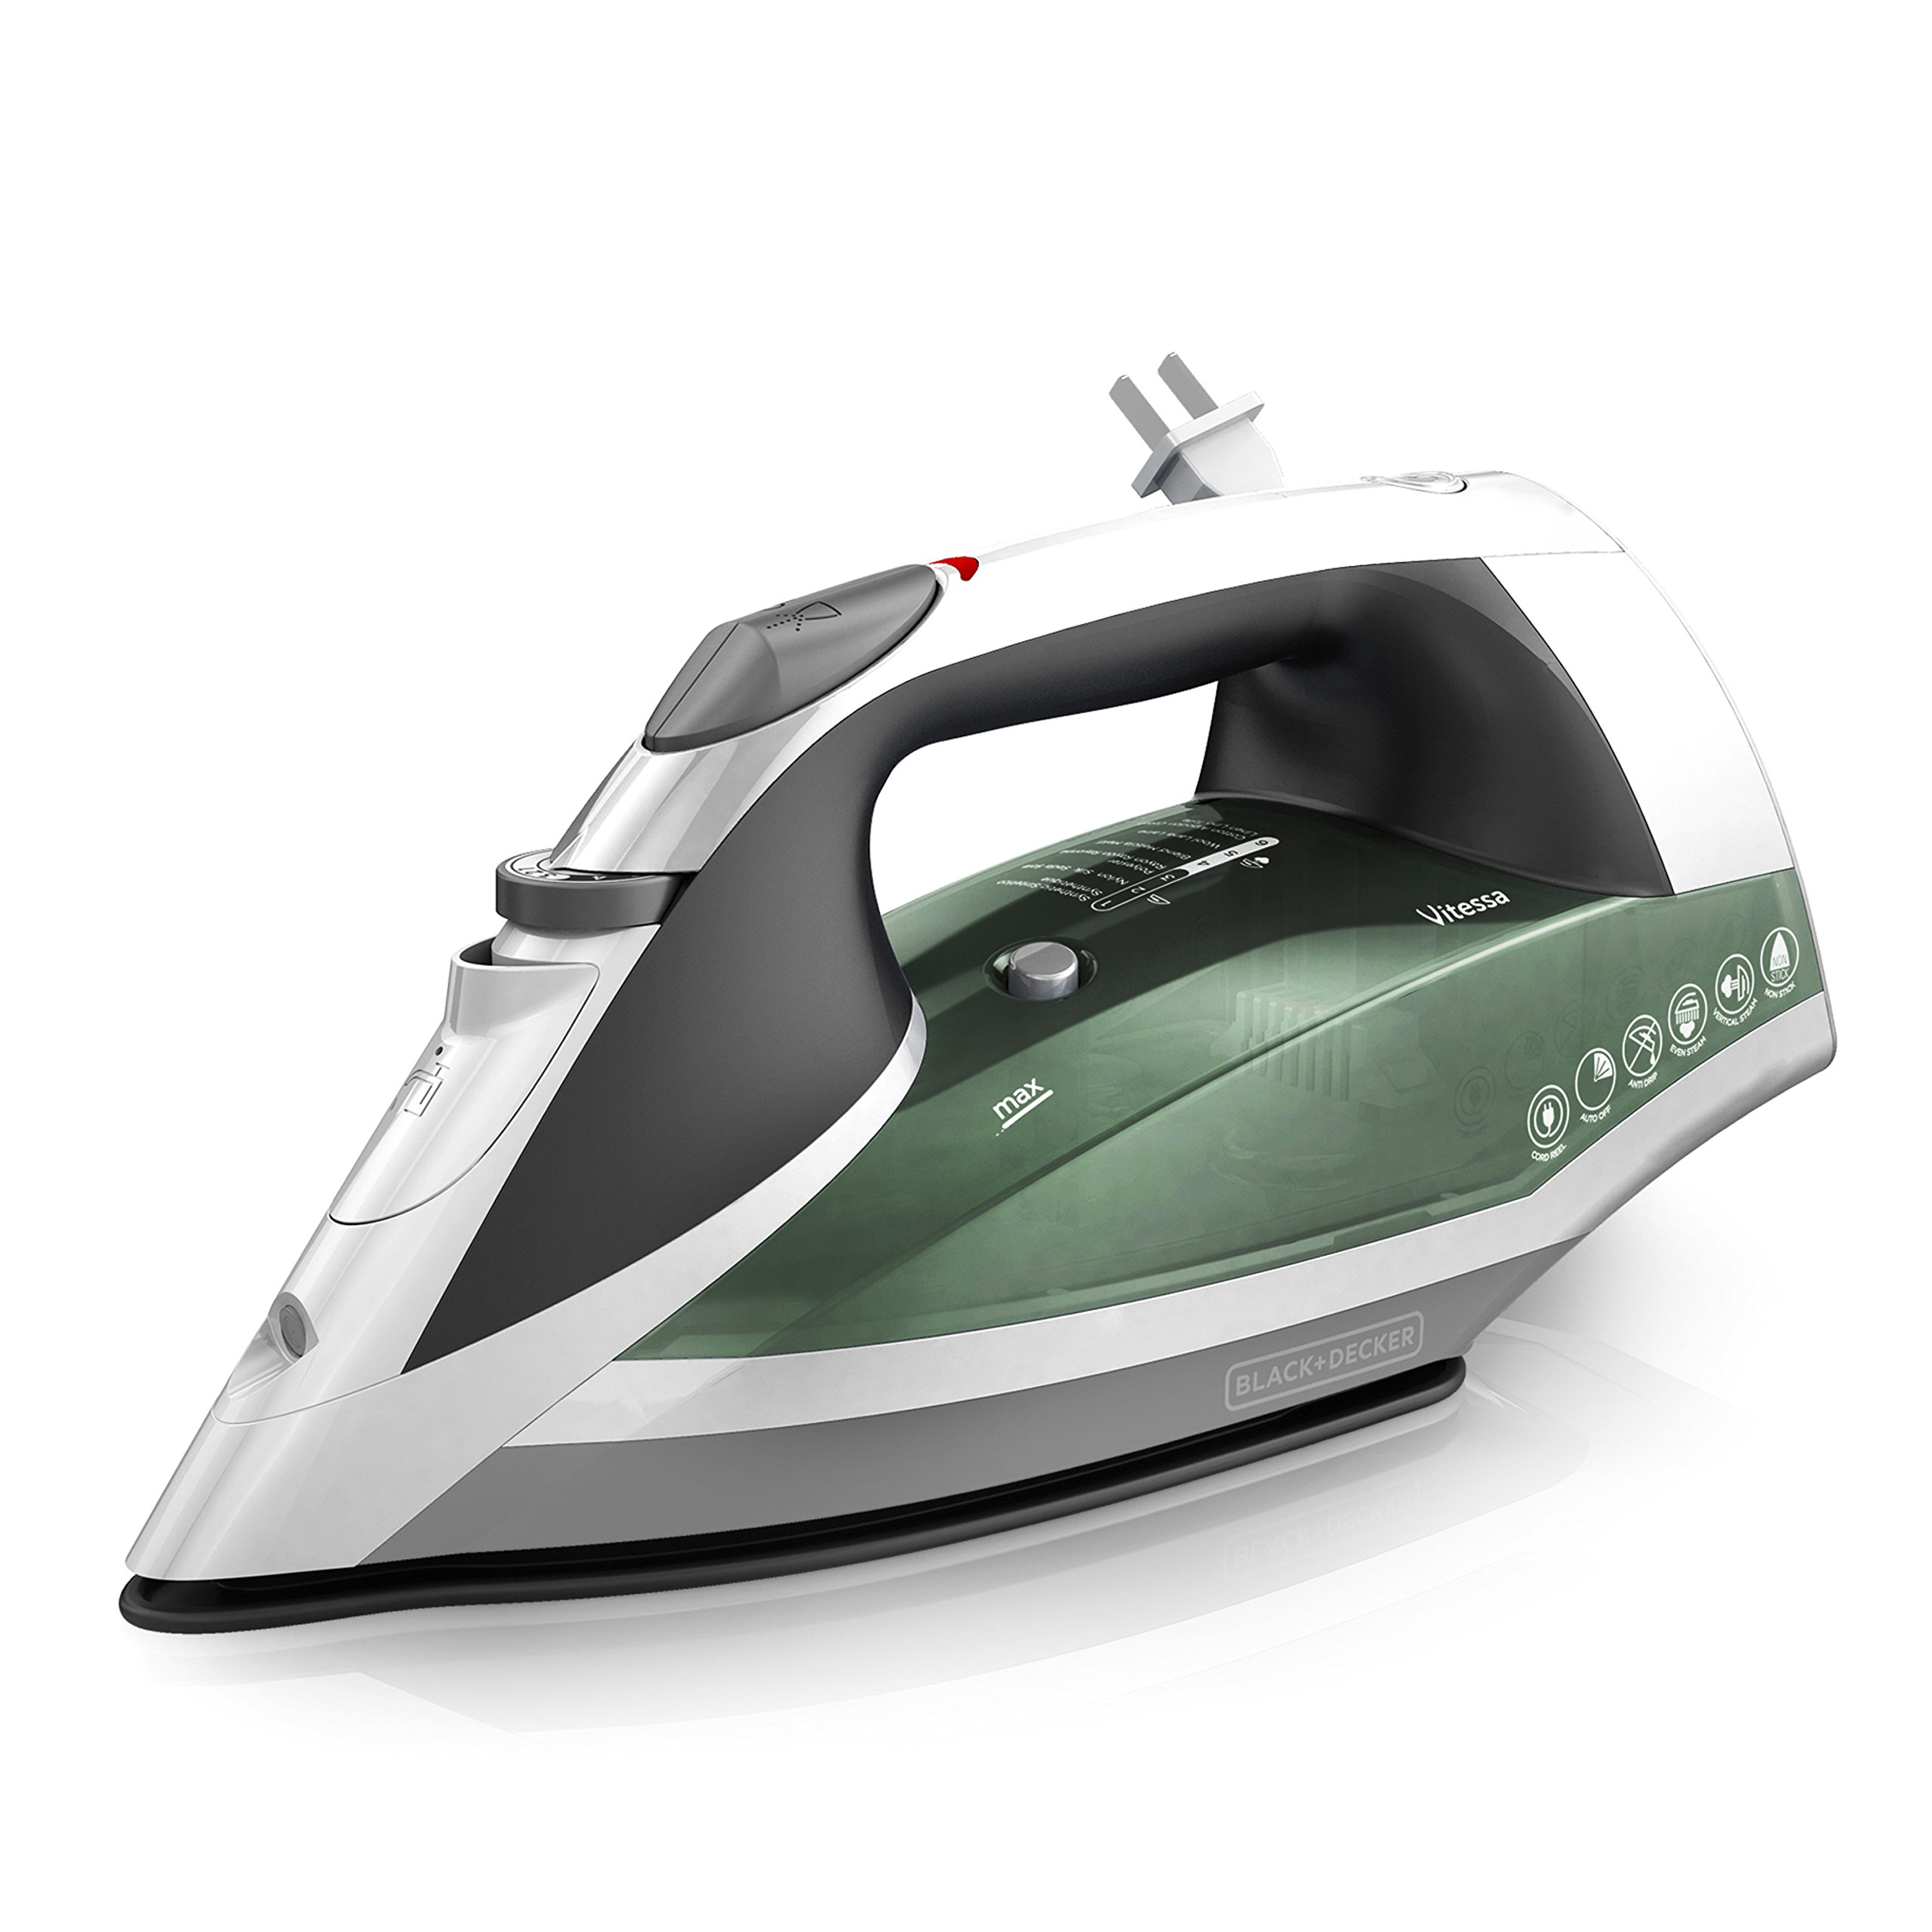 BLACK+DECKER Vitessa Advanced Steam Iron with Retractable Cord, Nonstick Soleplate, Sage, ICR2020